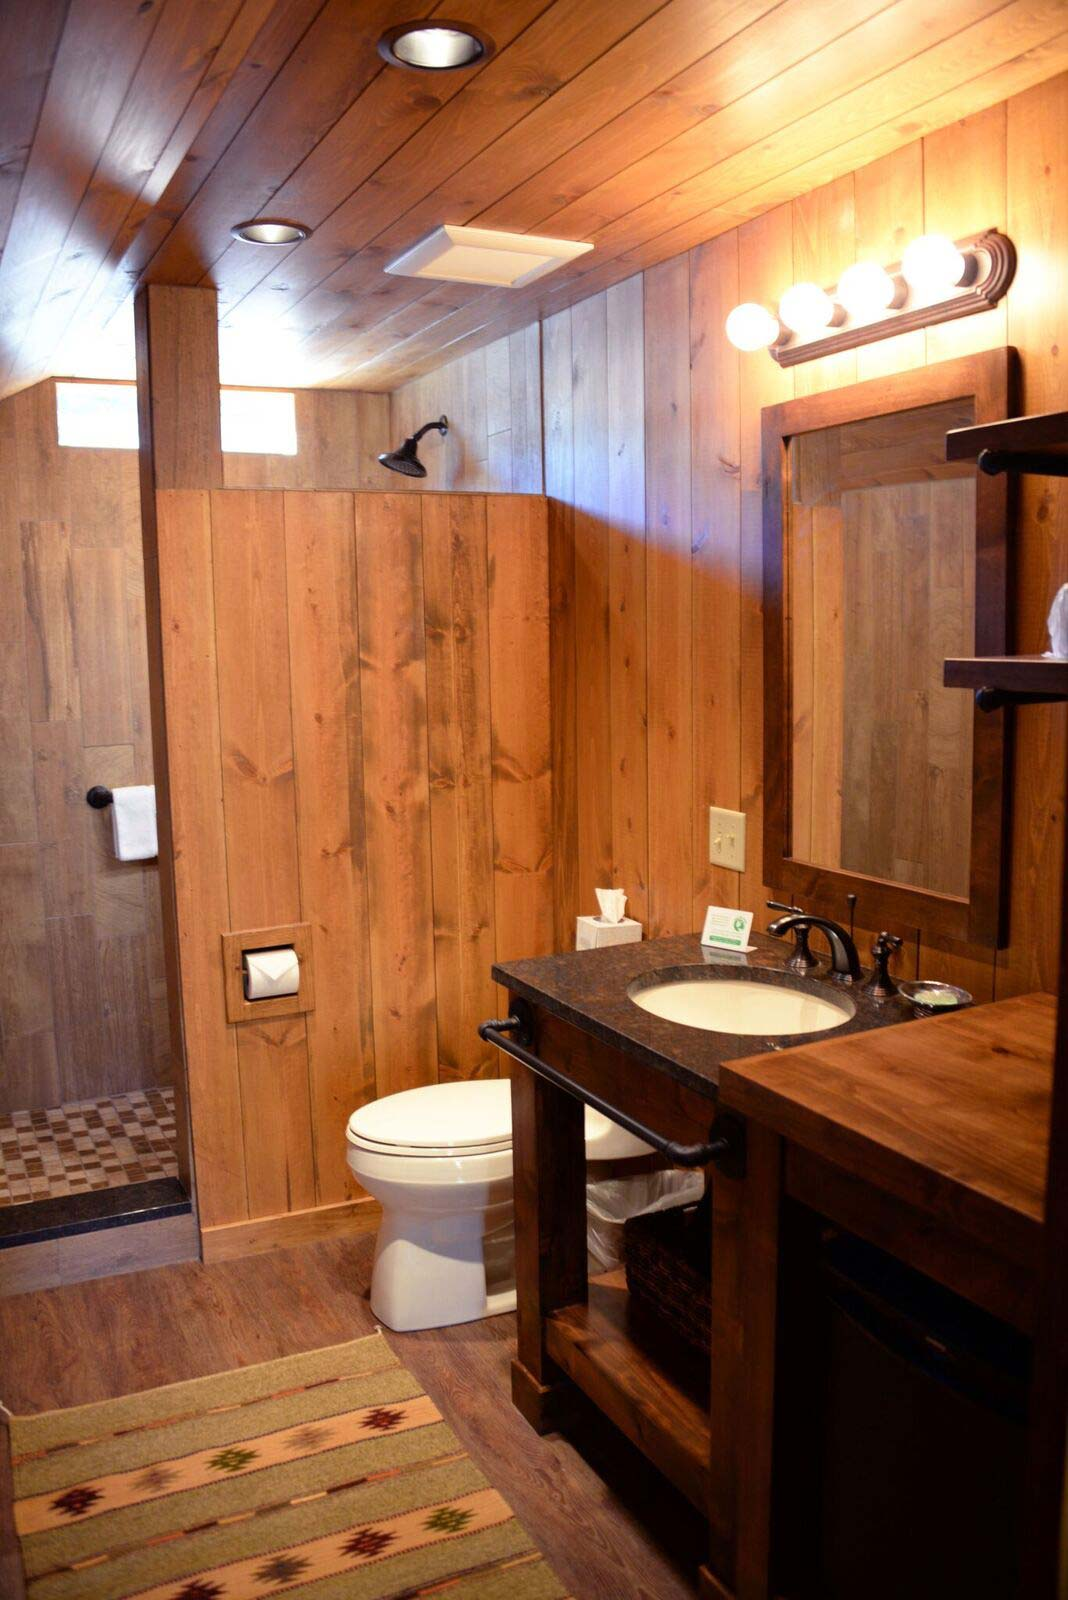 Jackson Hole WY Cabins Photo Gallery - Gros Ventre River Ranch on Remodel:ll6Wzx8Nqba= Small Kitchen Ideas  id=56441